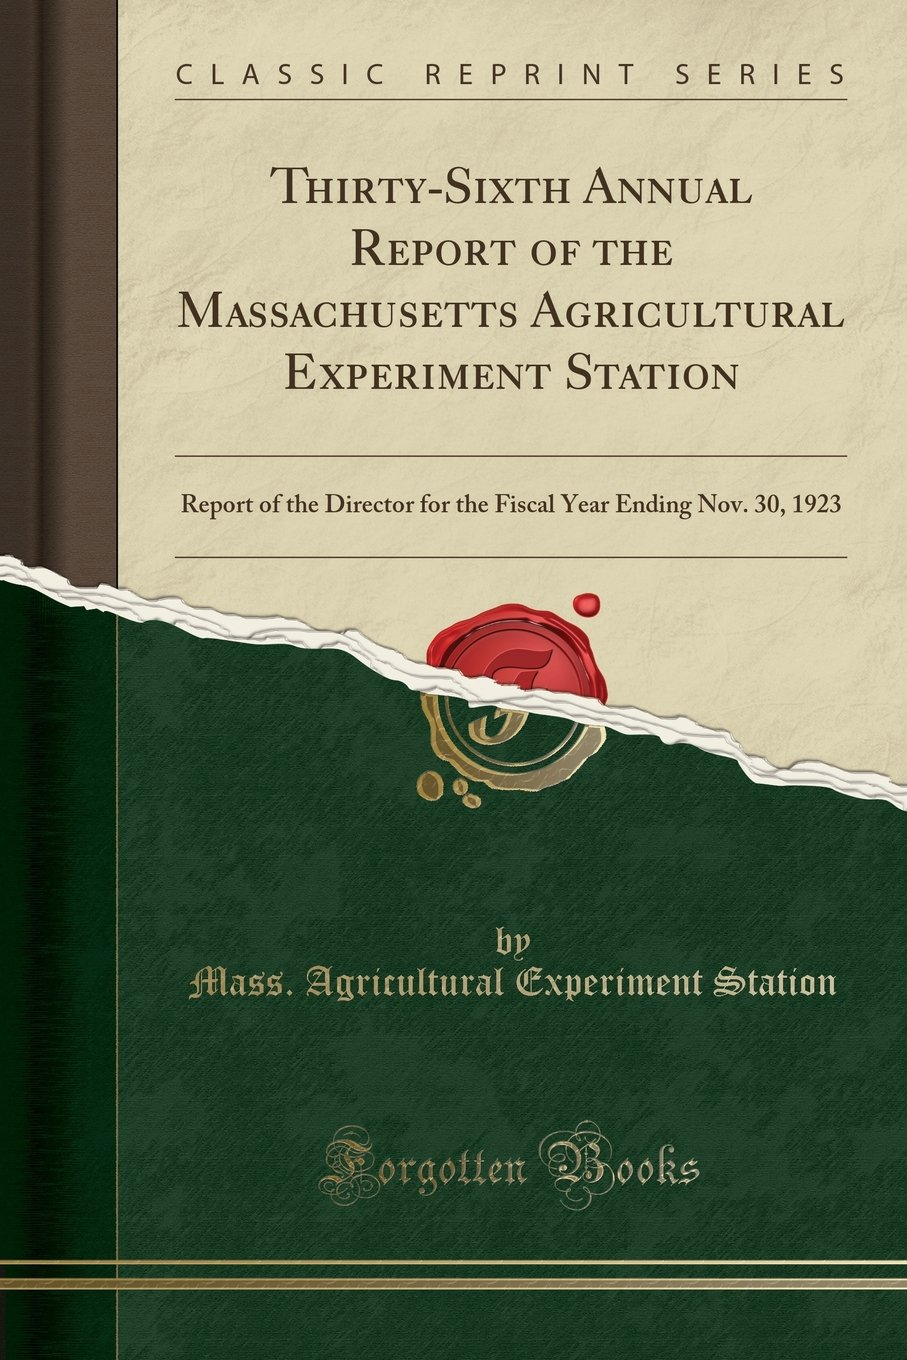 Read Online Thirty-Sixth Annual Report of the Massachusetts Agricultural Experiment Station: Report of the Director for the Fiscal Year Ending Nov. 30, 1923 (Classic Reprint) PDF